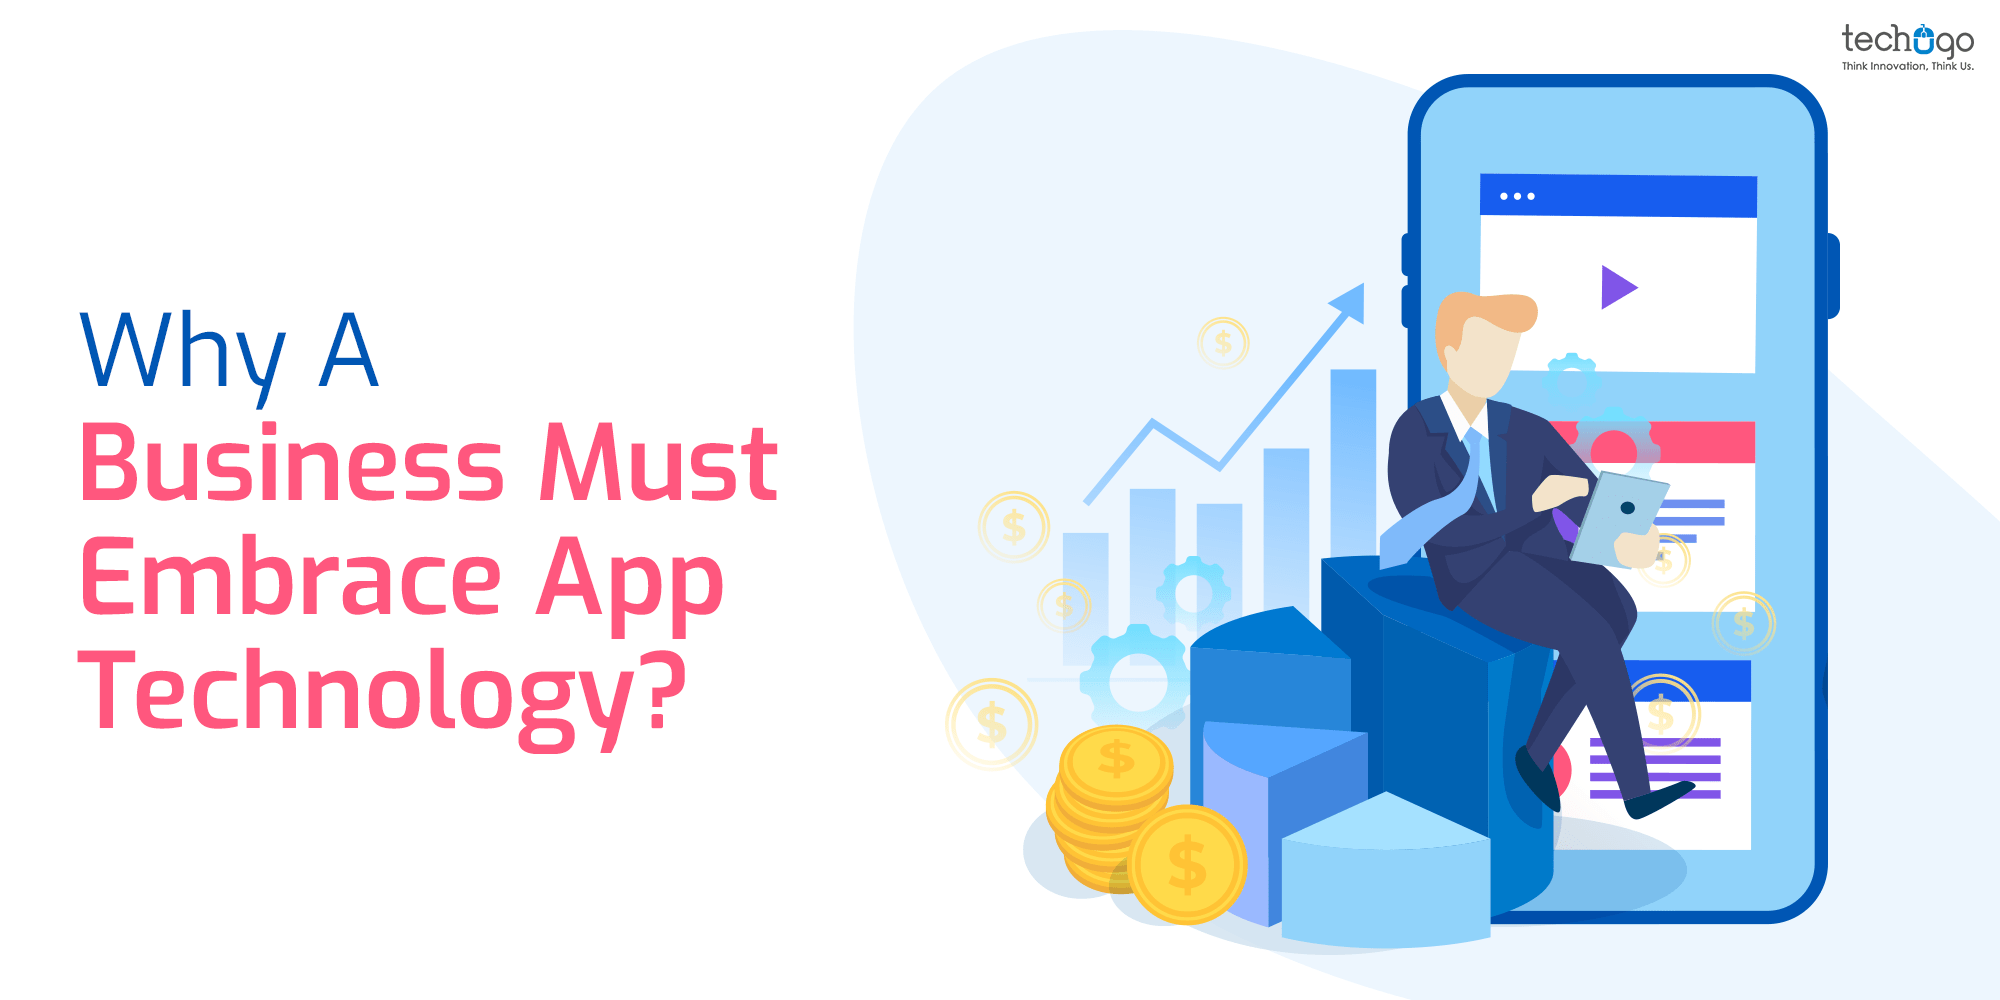 Why A Business Must Embrace App Technology?